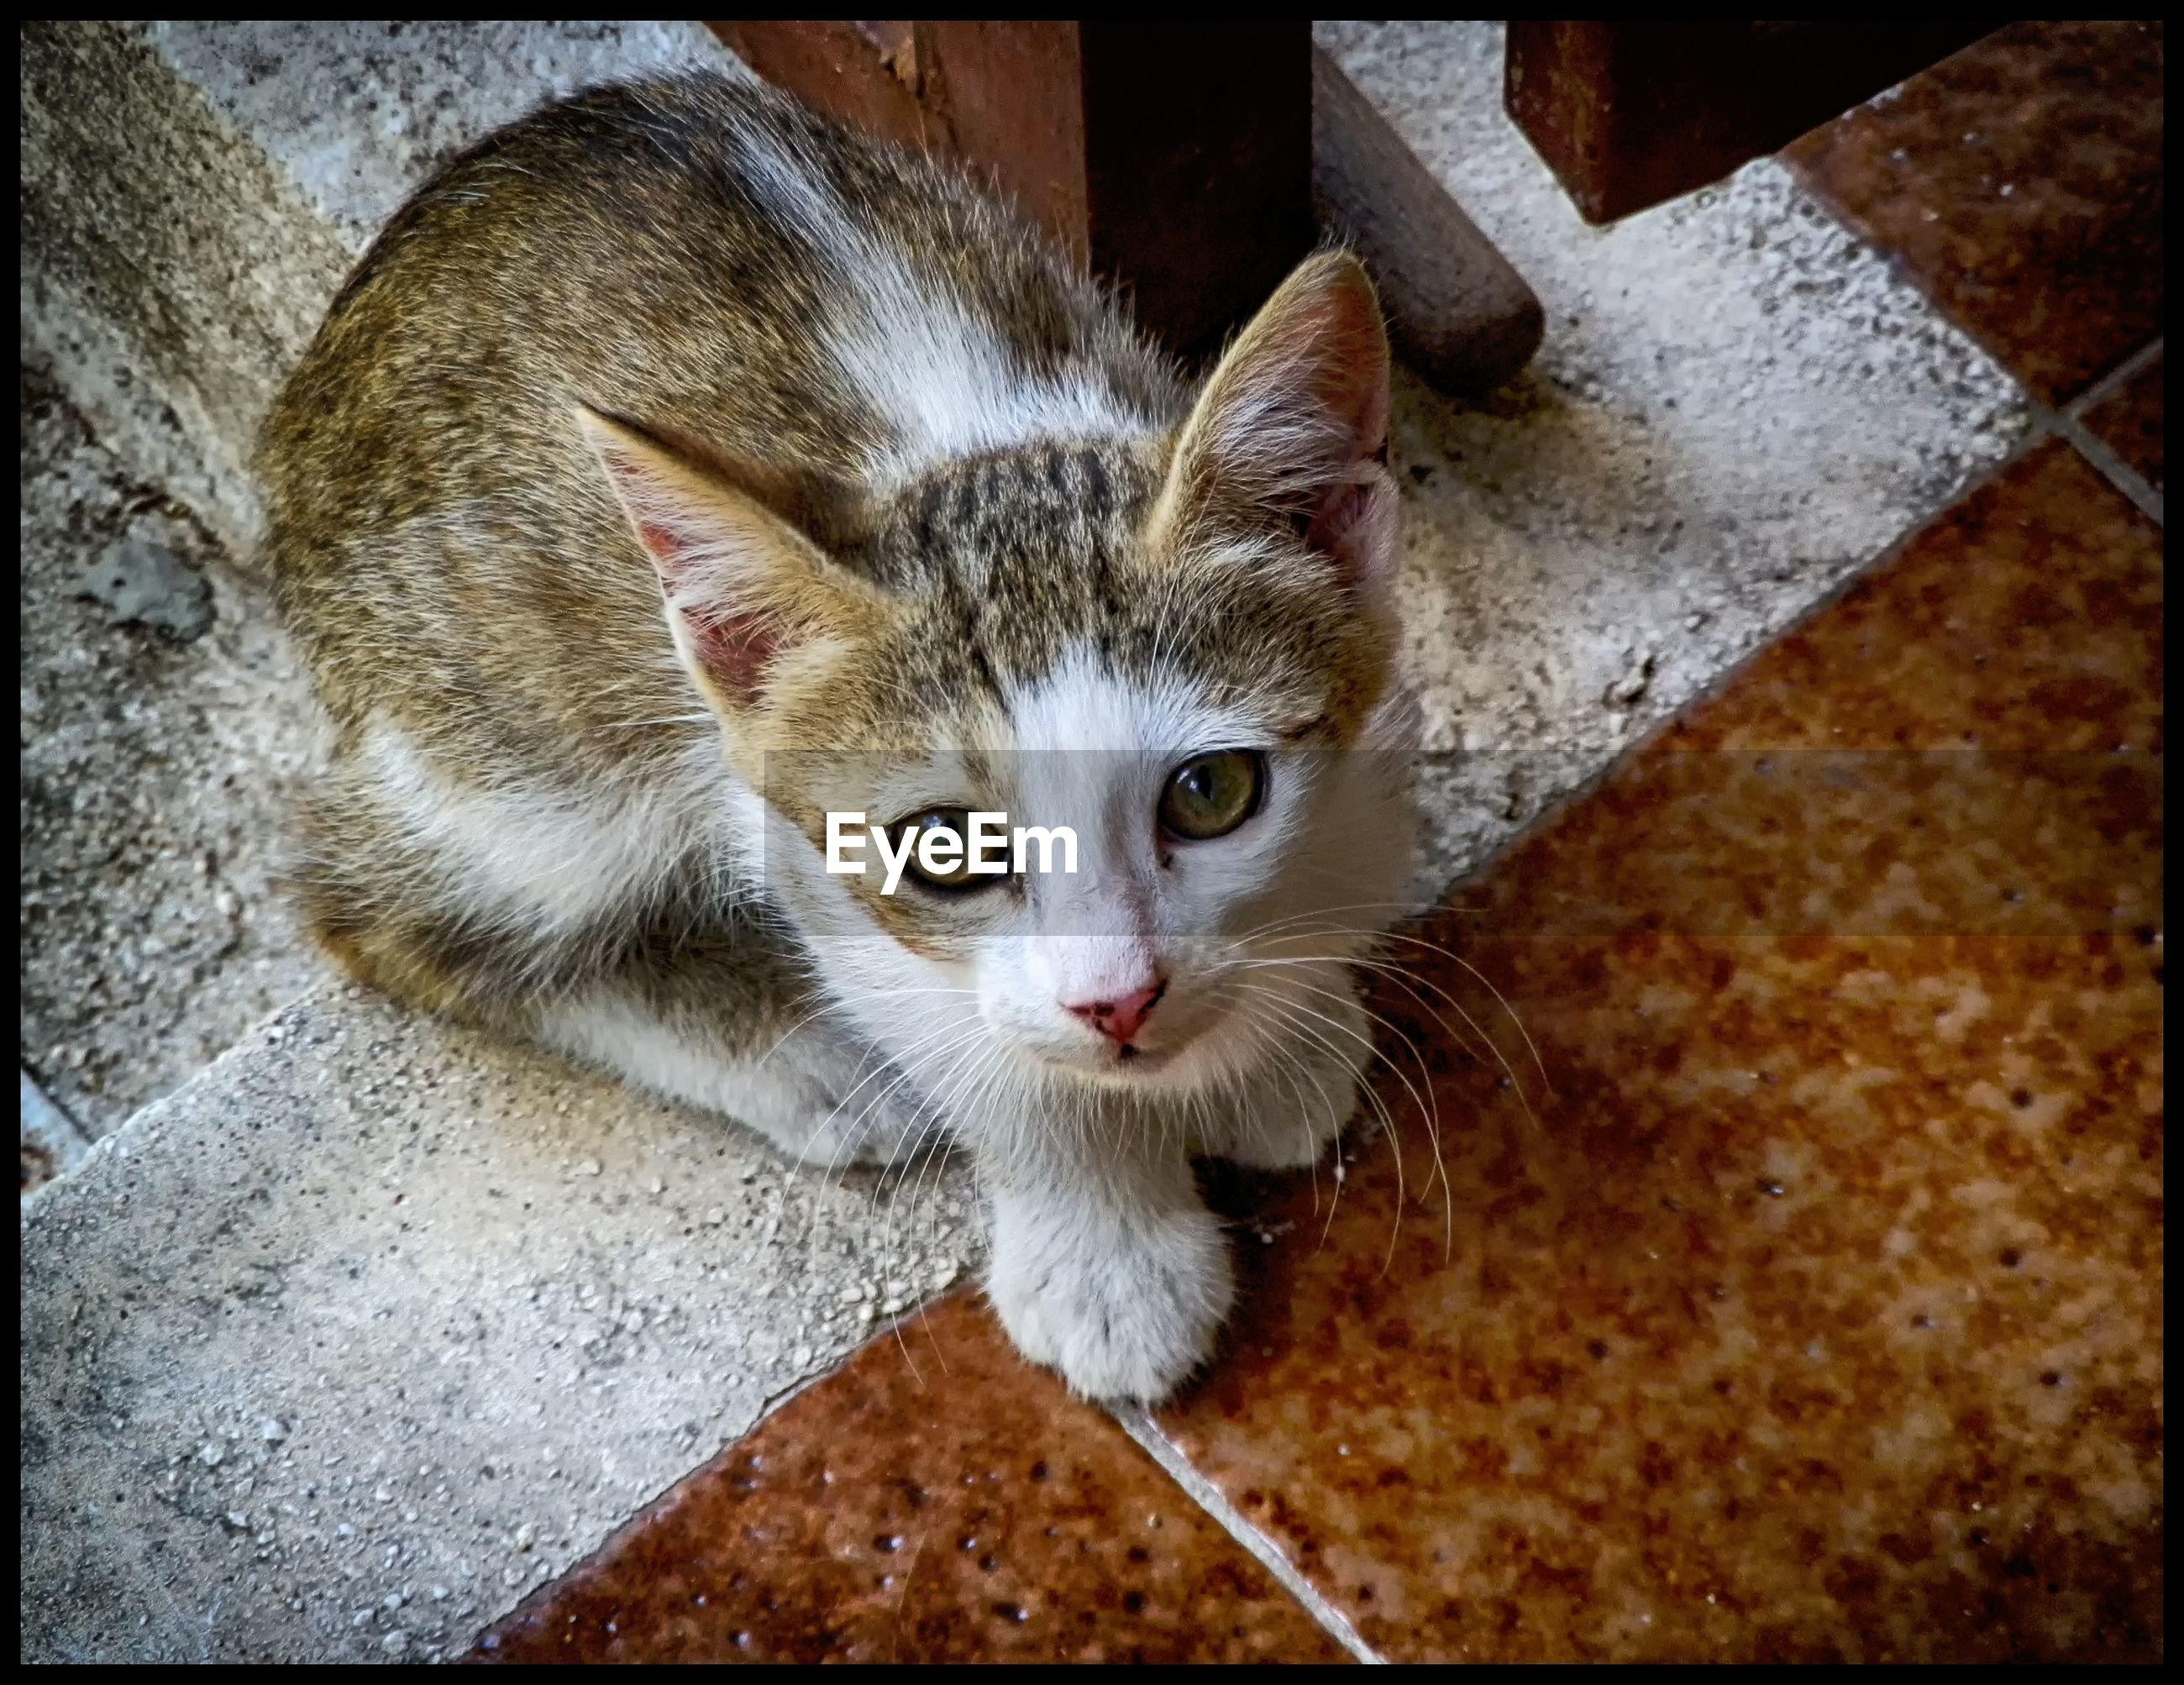 pets, animal themes, one animal, transfer print, domestic cat, domestic animals, cat, portrait, looking at camera, mammal, feline, auto post production filter, whisker, indoors, high angle view, animal head, close-up, alertness, staring, young animal